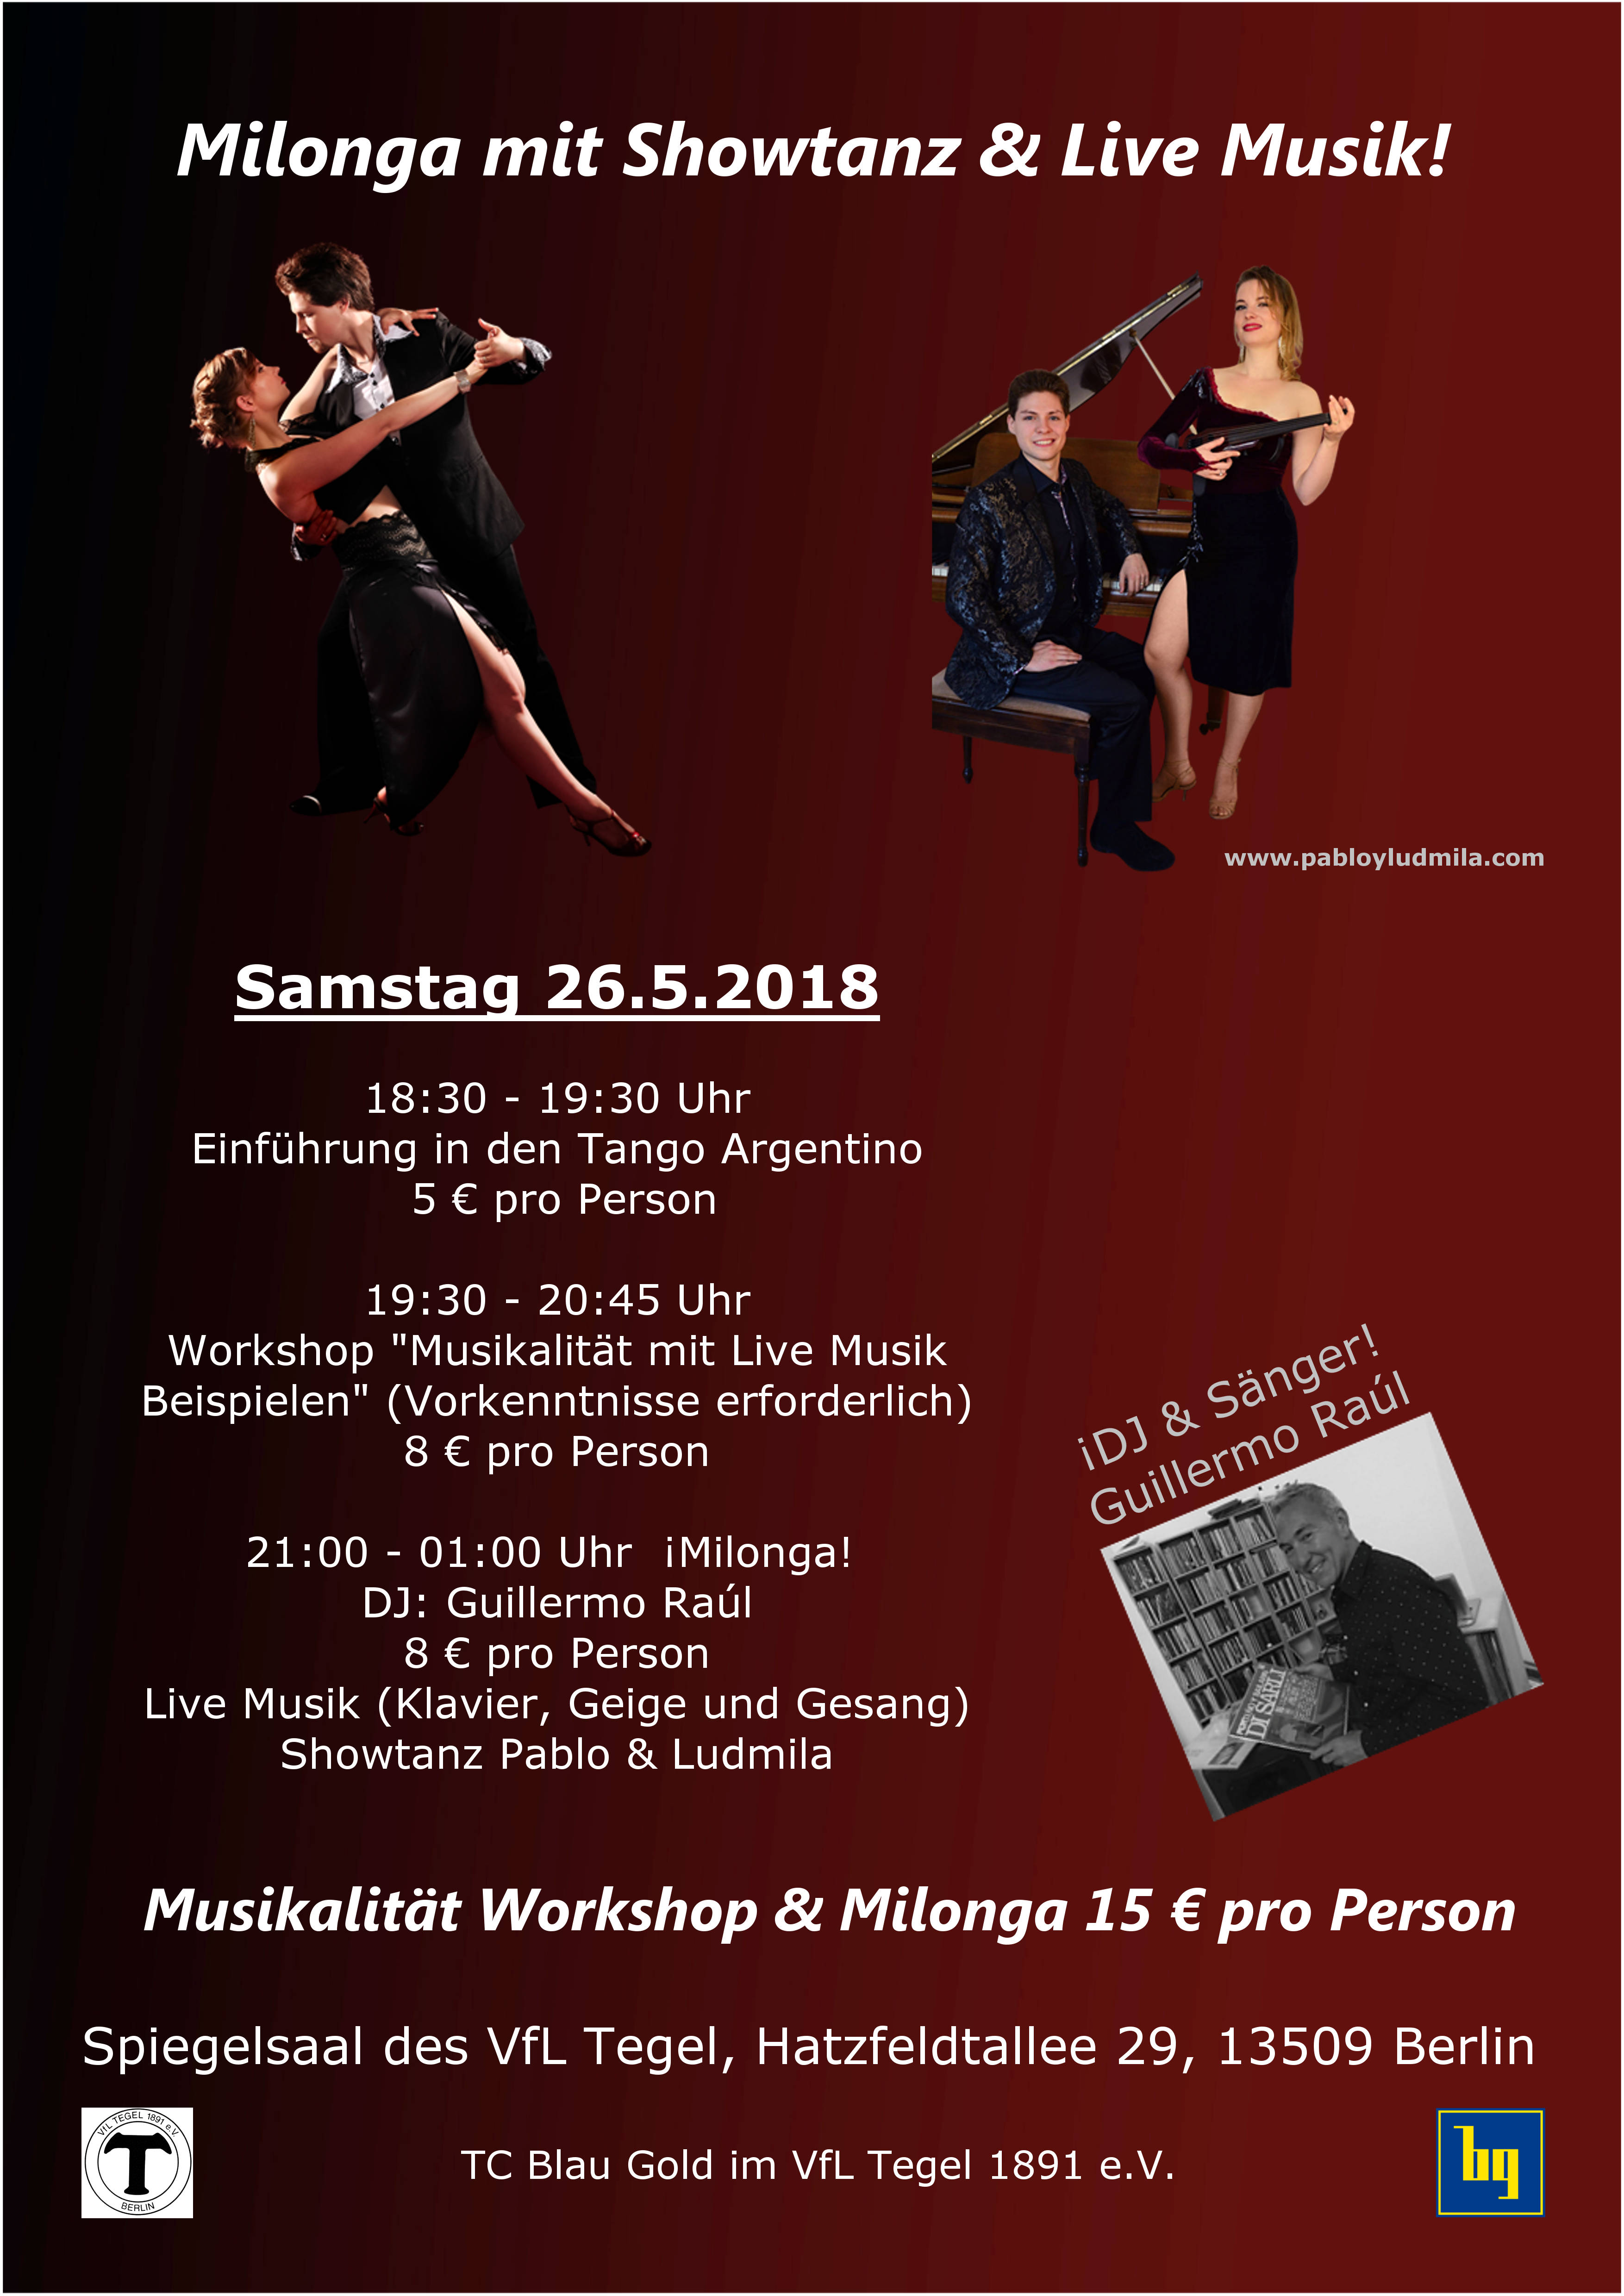 Milonga compressed 70